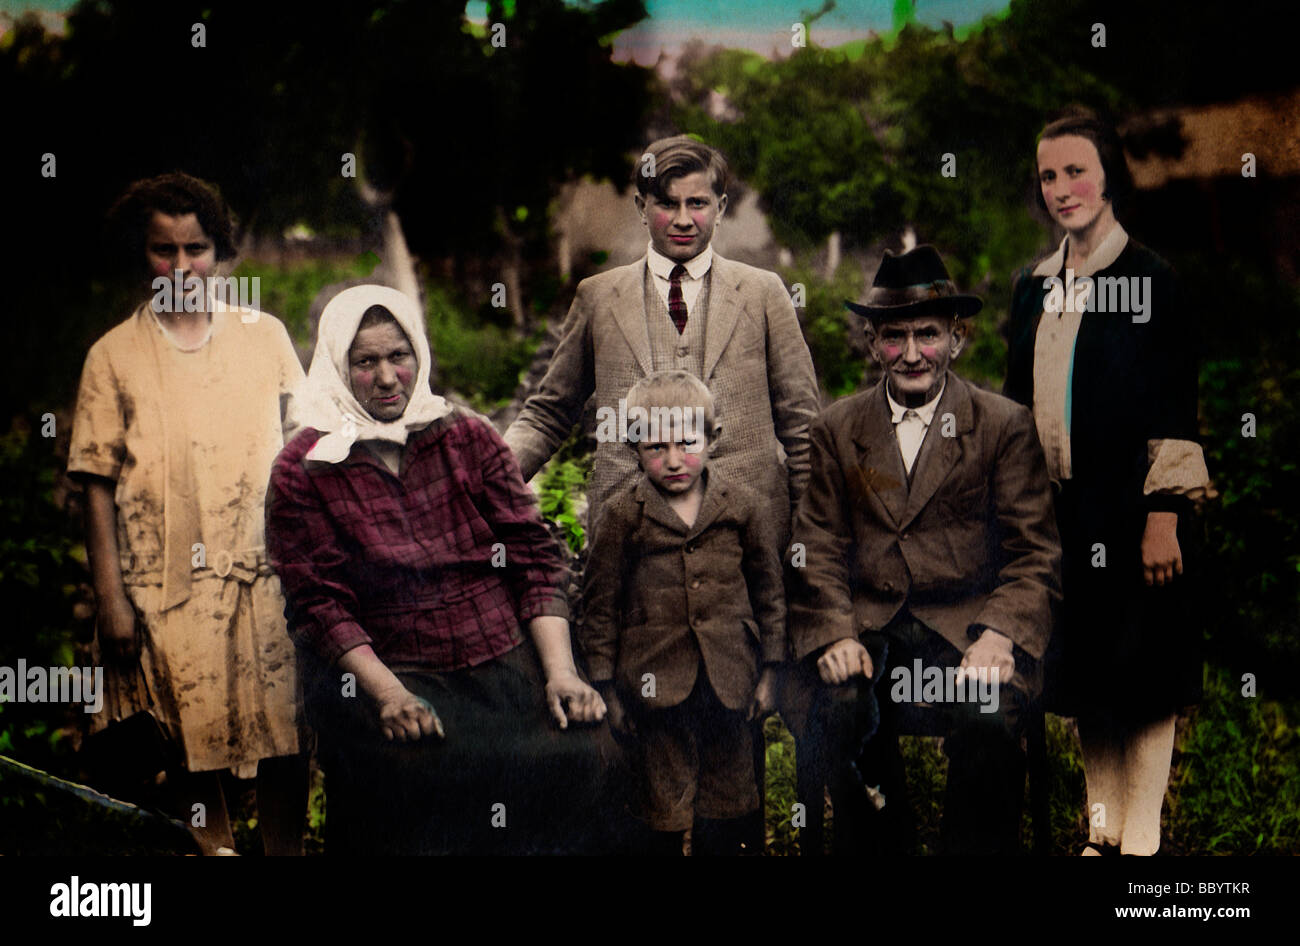 Extended family from the countryside, historic photograph, circa 1930 - Stock Image